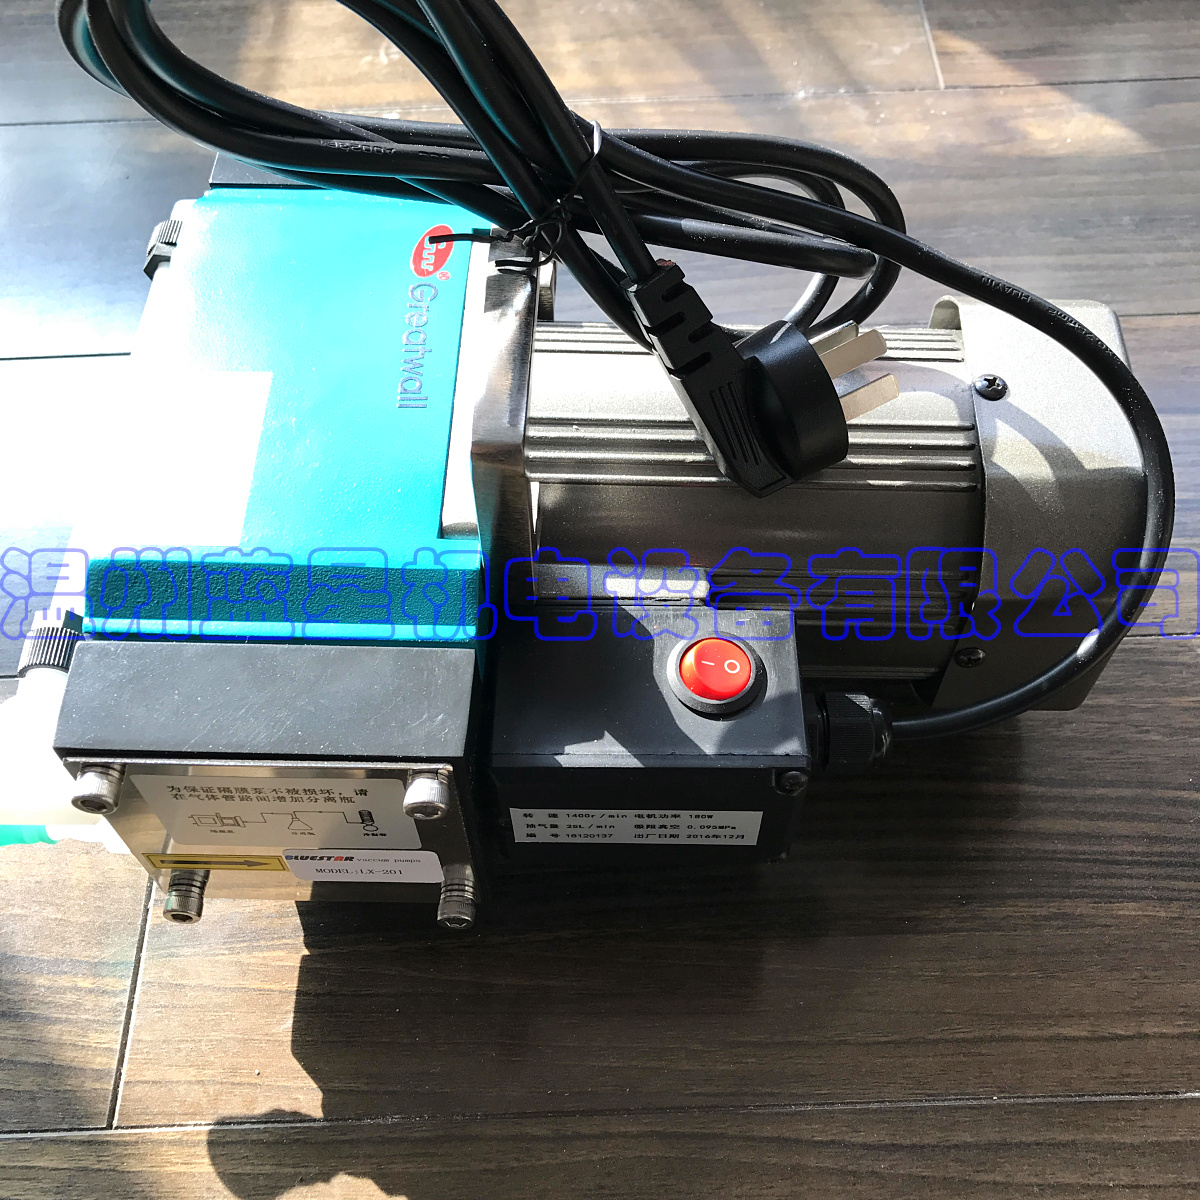 Corrosion-resistant high temperature diaphragm oil-free vacuum pump LX-201 limit vacuum -0.098MPA 25L / min manka care 110v 220v ac 33l min 80 w oil free diaphragm vacuum pump silent pumps oil less oil free compressing pump